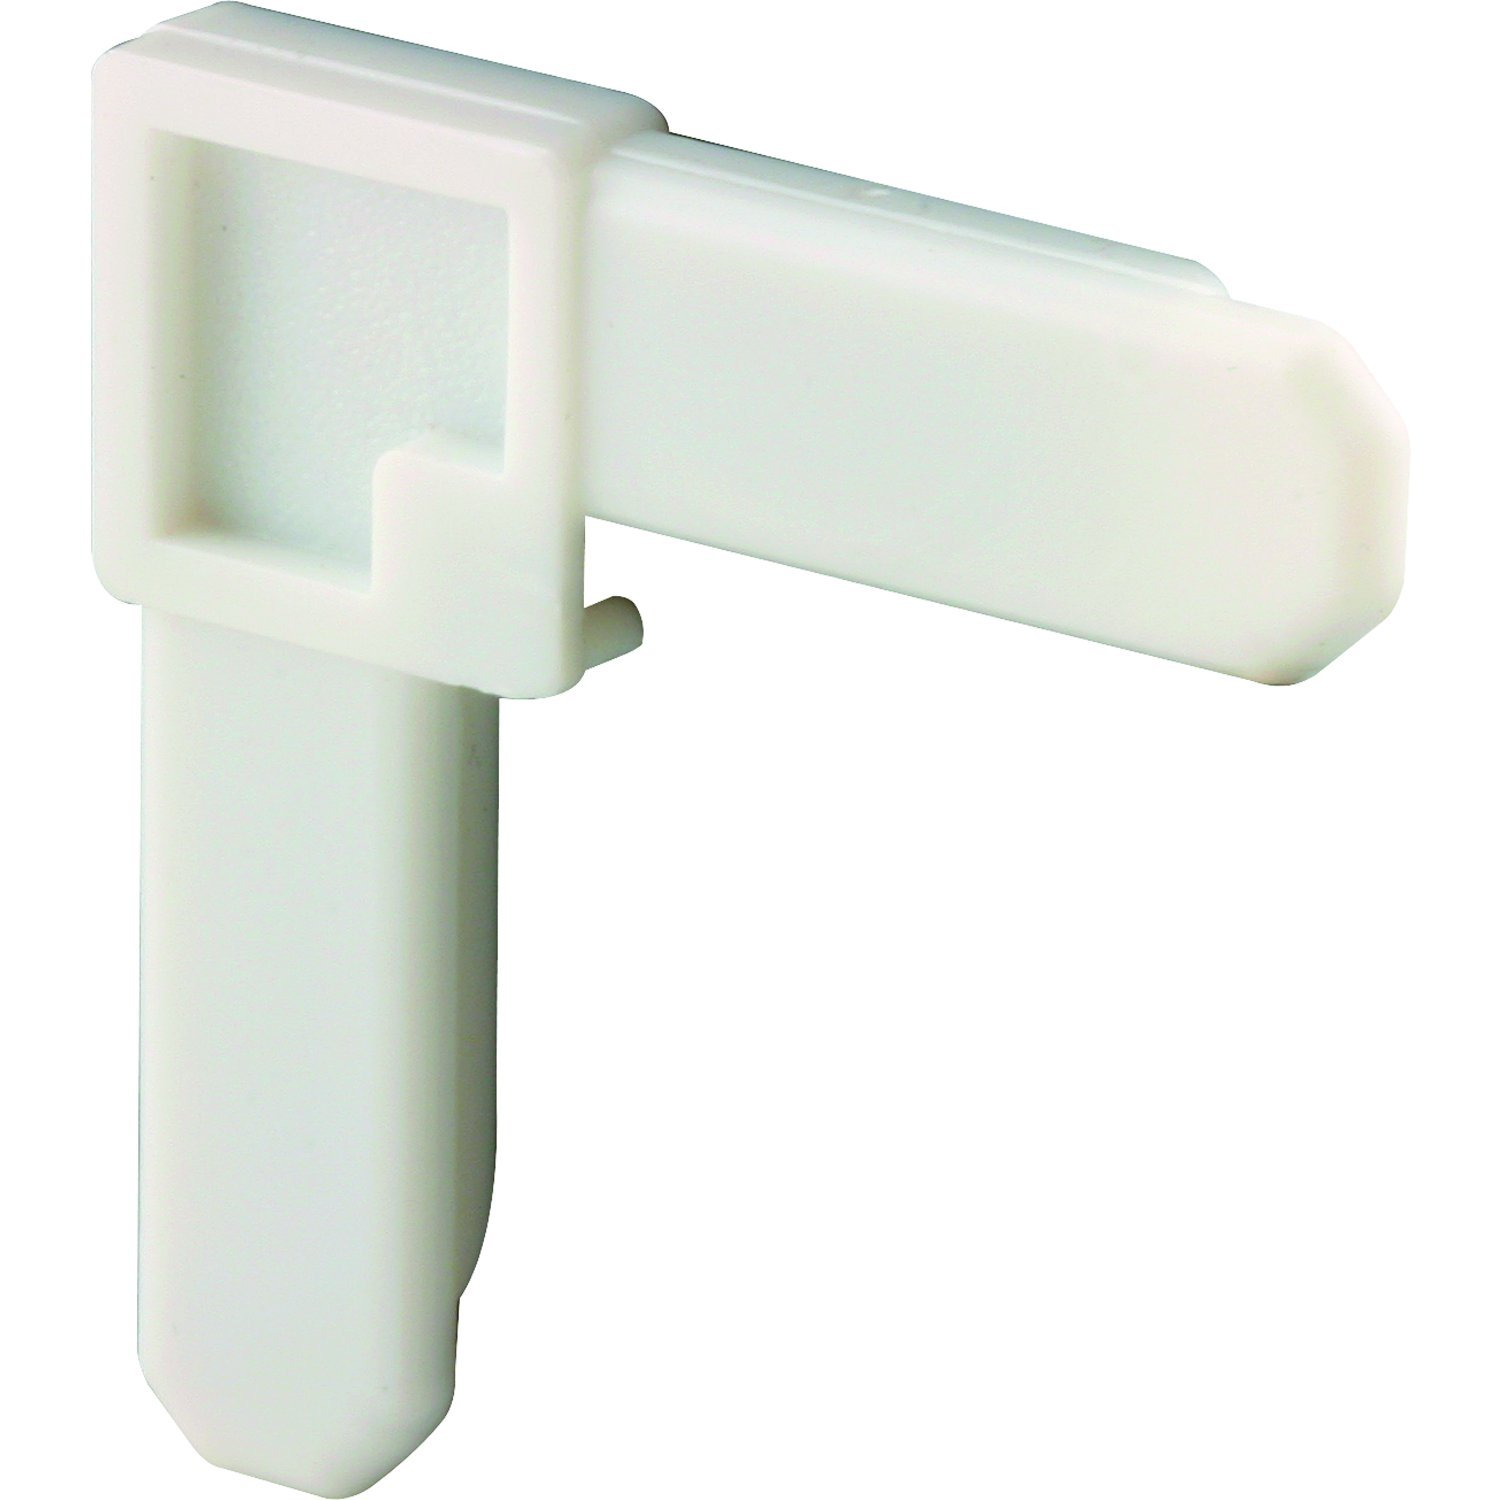 Prime-Line Products MP7729 Plastic Screen Frame Corner, 5/16 in. x 3/4 in, White Finish, (Box of 100),